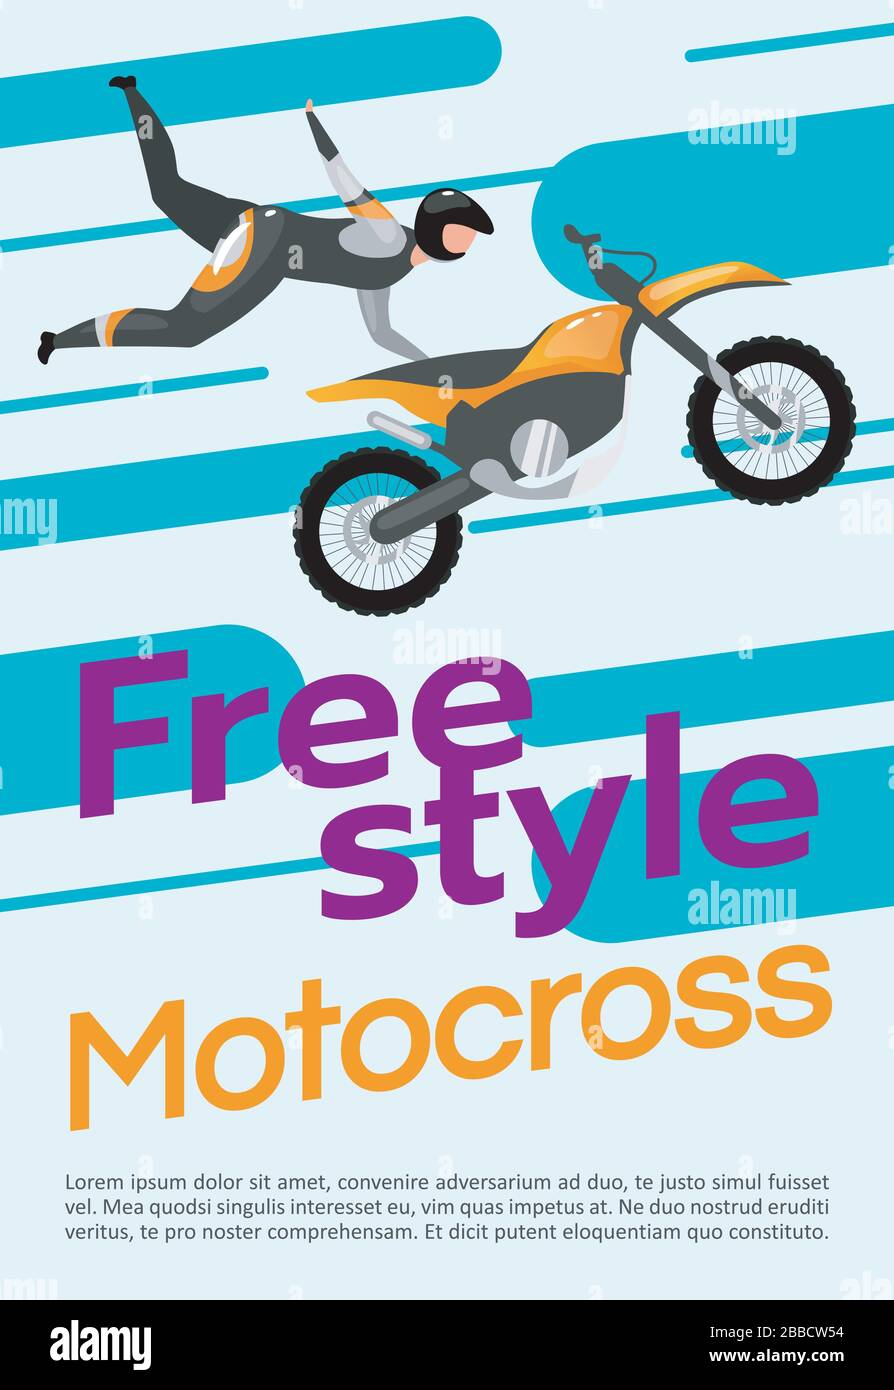 Freestyle Motocross Poster Vector Template Stock Vector Image Art Alamy